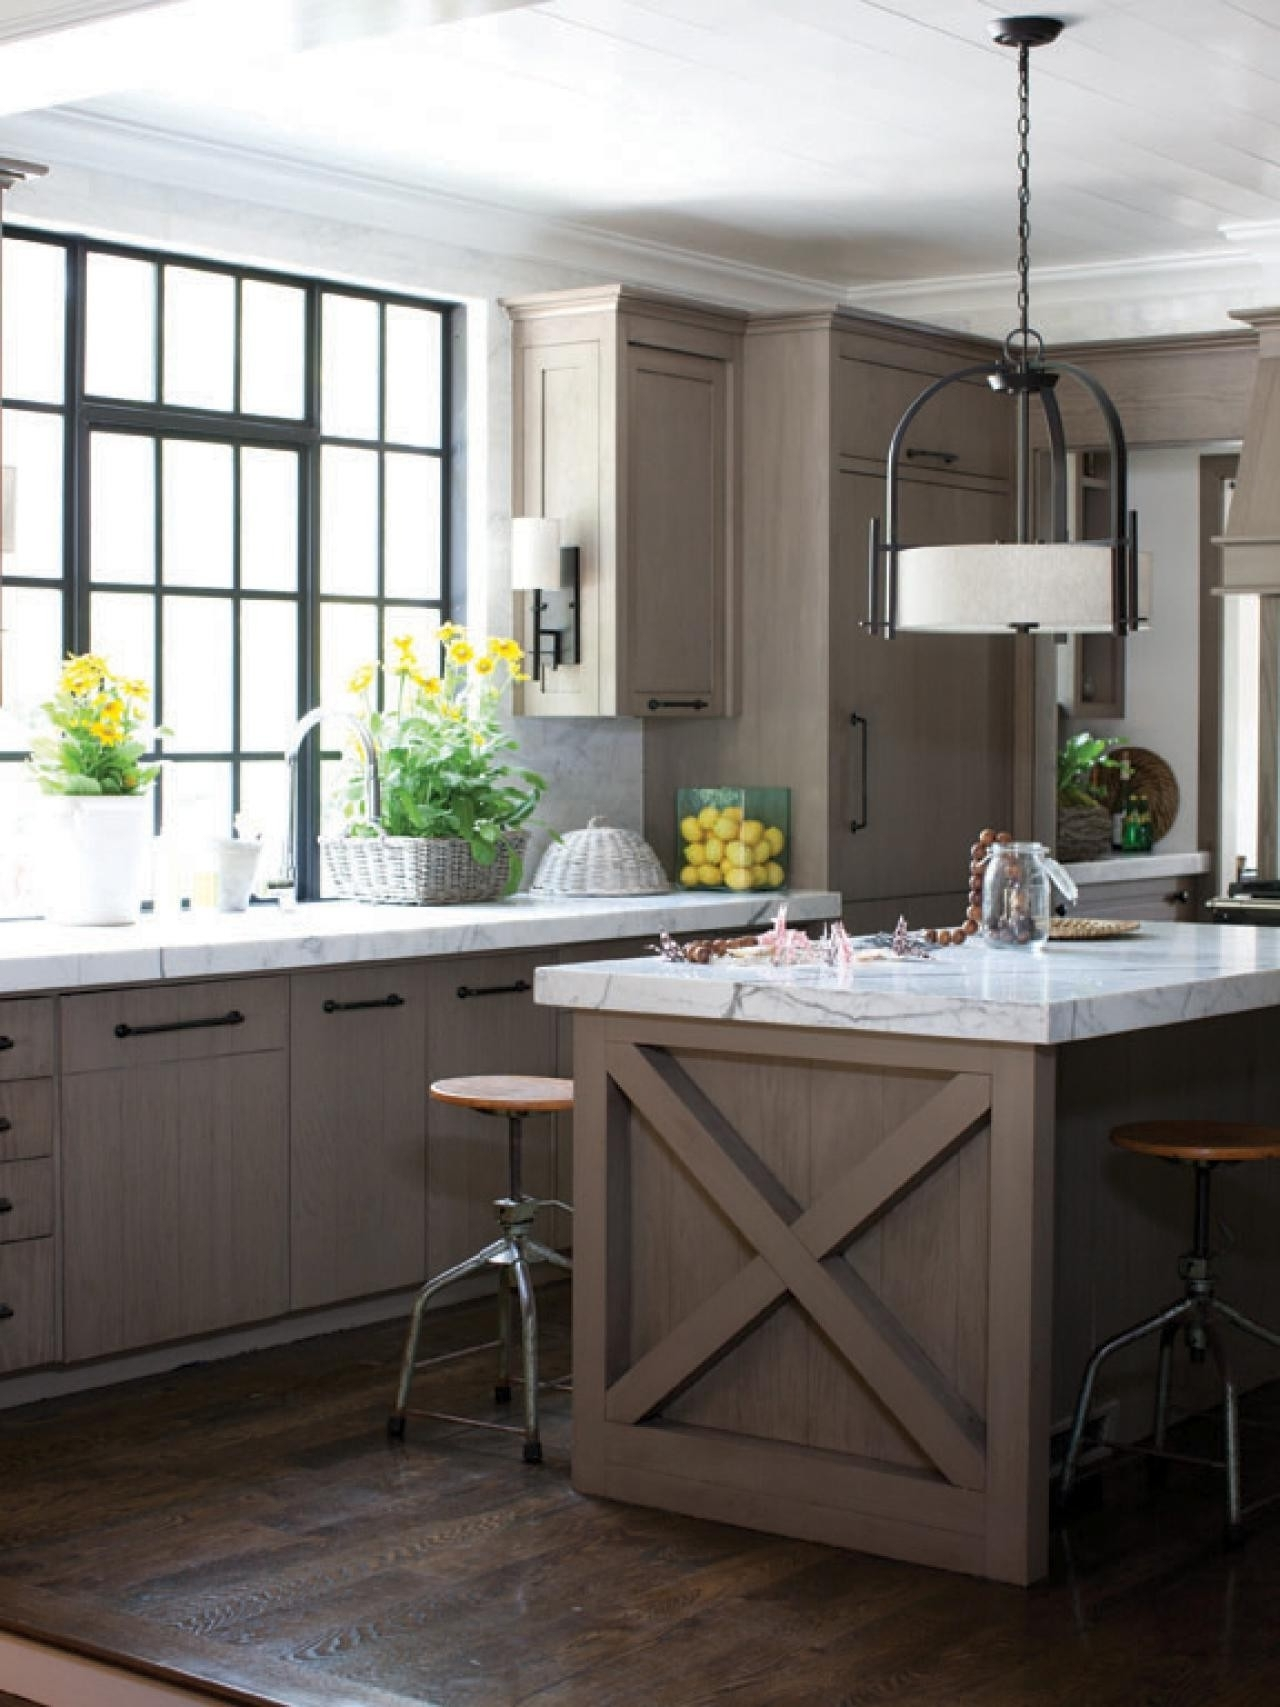 Fashionable Small Rustic Kitchen Chandeliers Pertaining To Wrought Iron Kitchen Island Lighting Elegant Chandeliers Design (View 6 of 15)